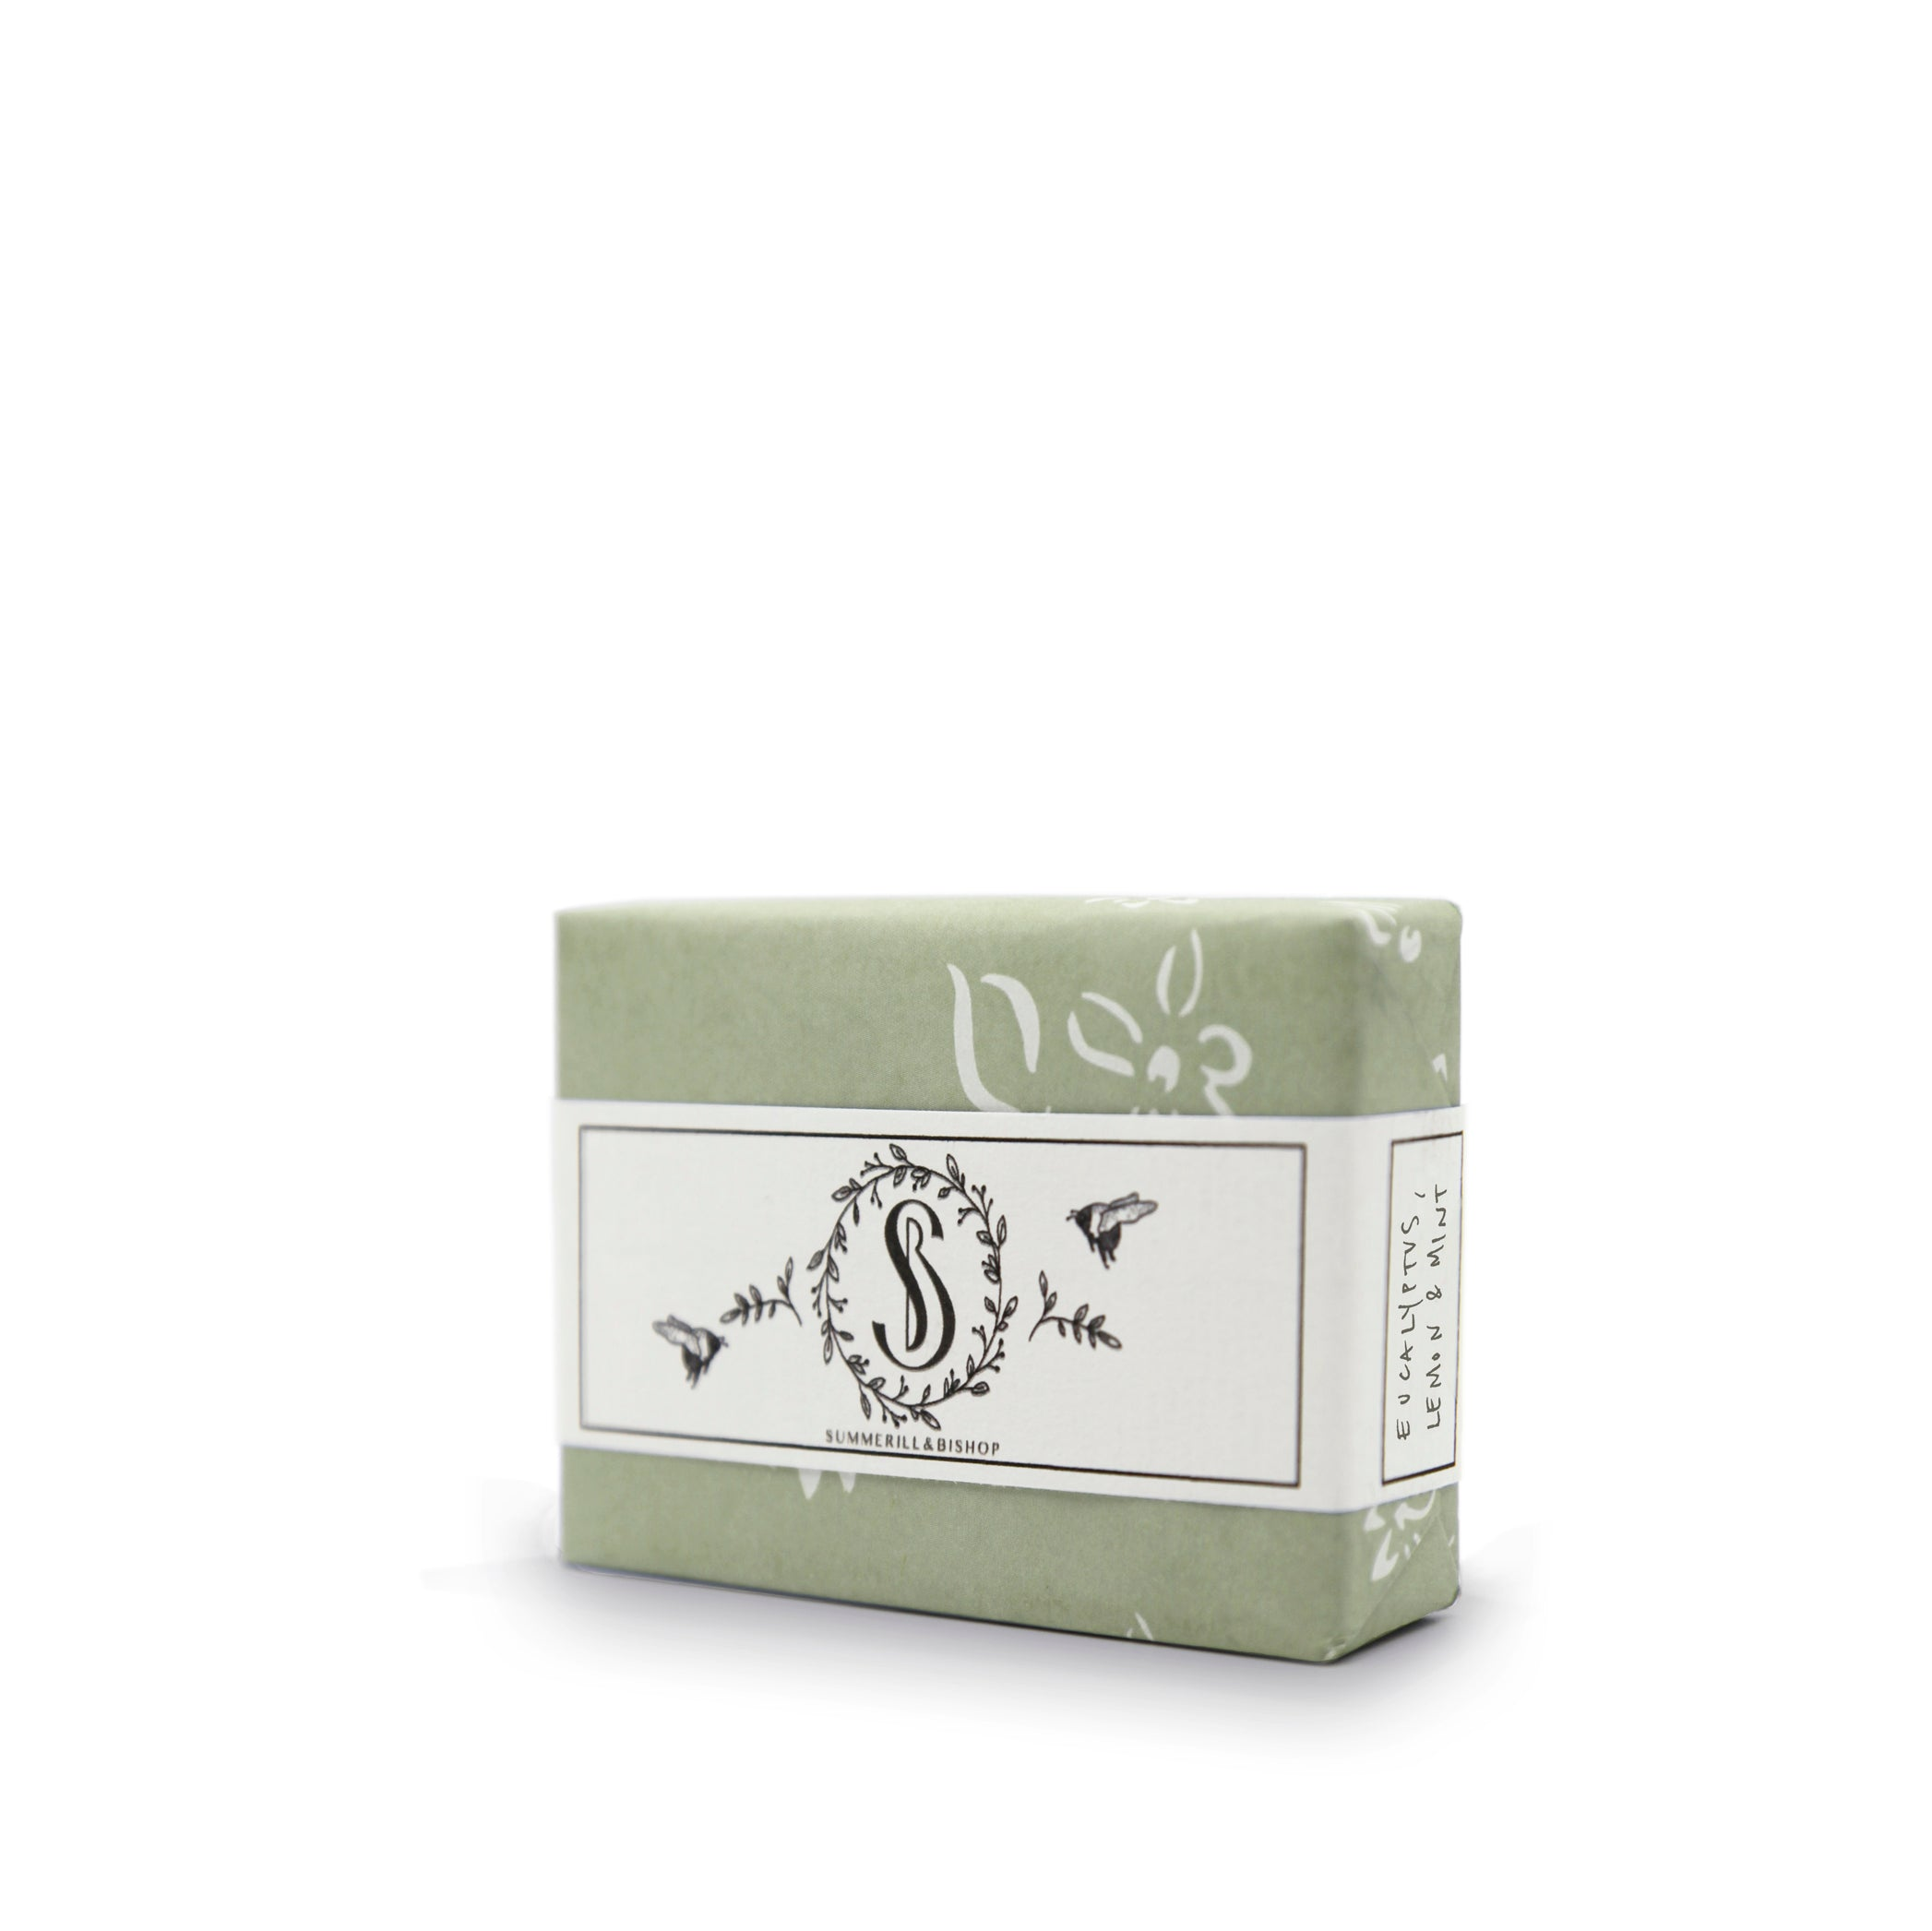 S&B Eucalyptus, Mint & Lemon Handmade Soap, 100g